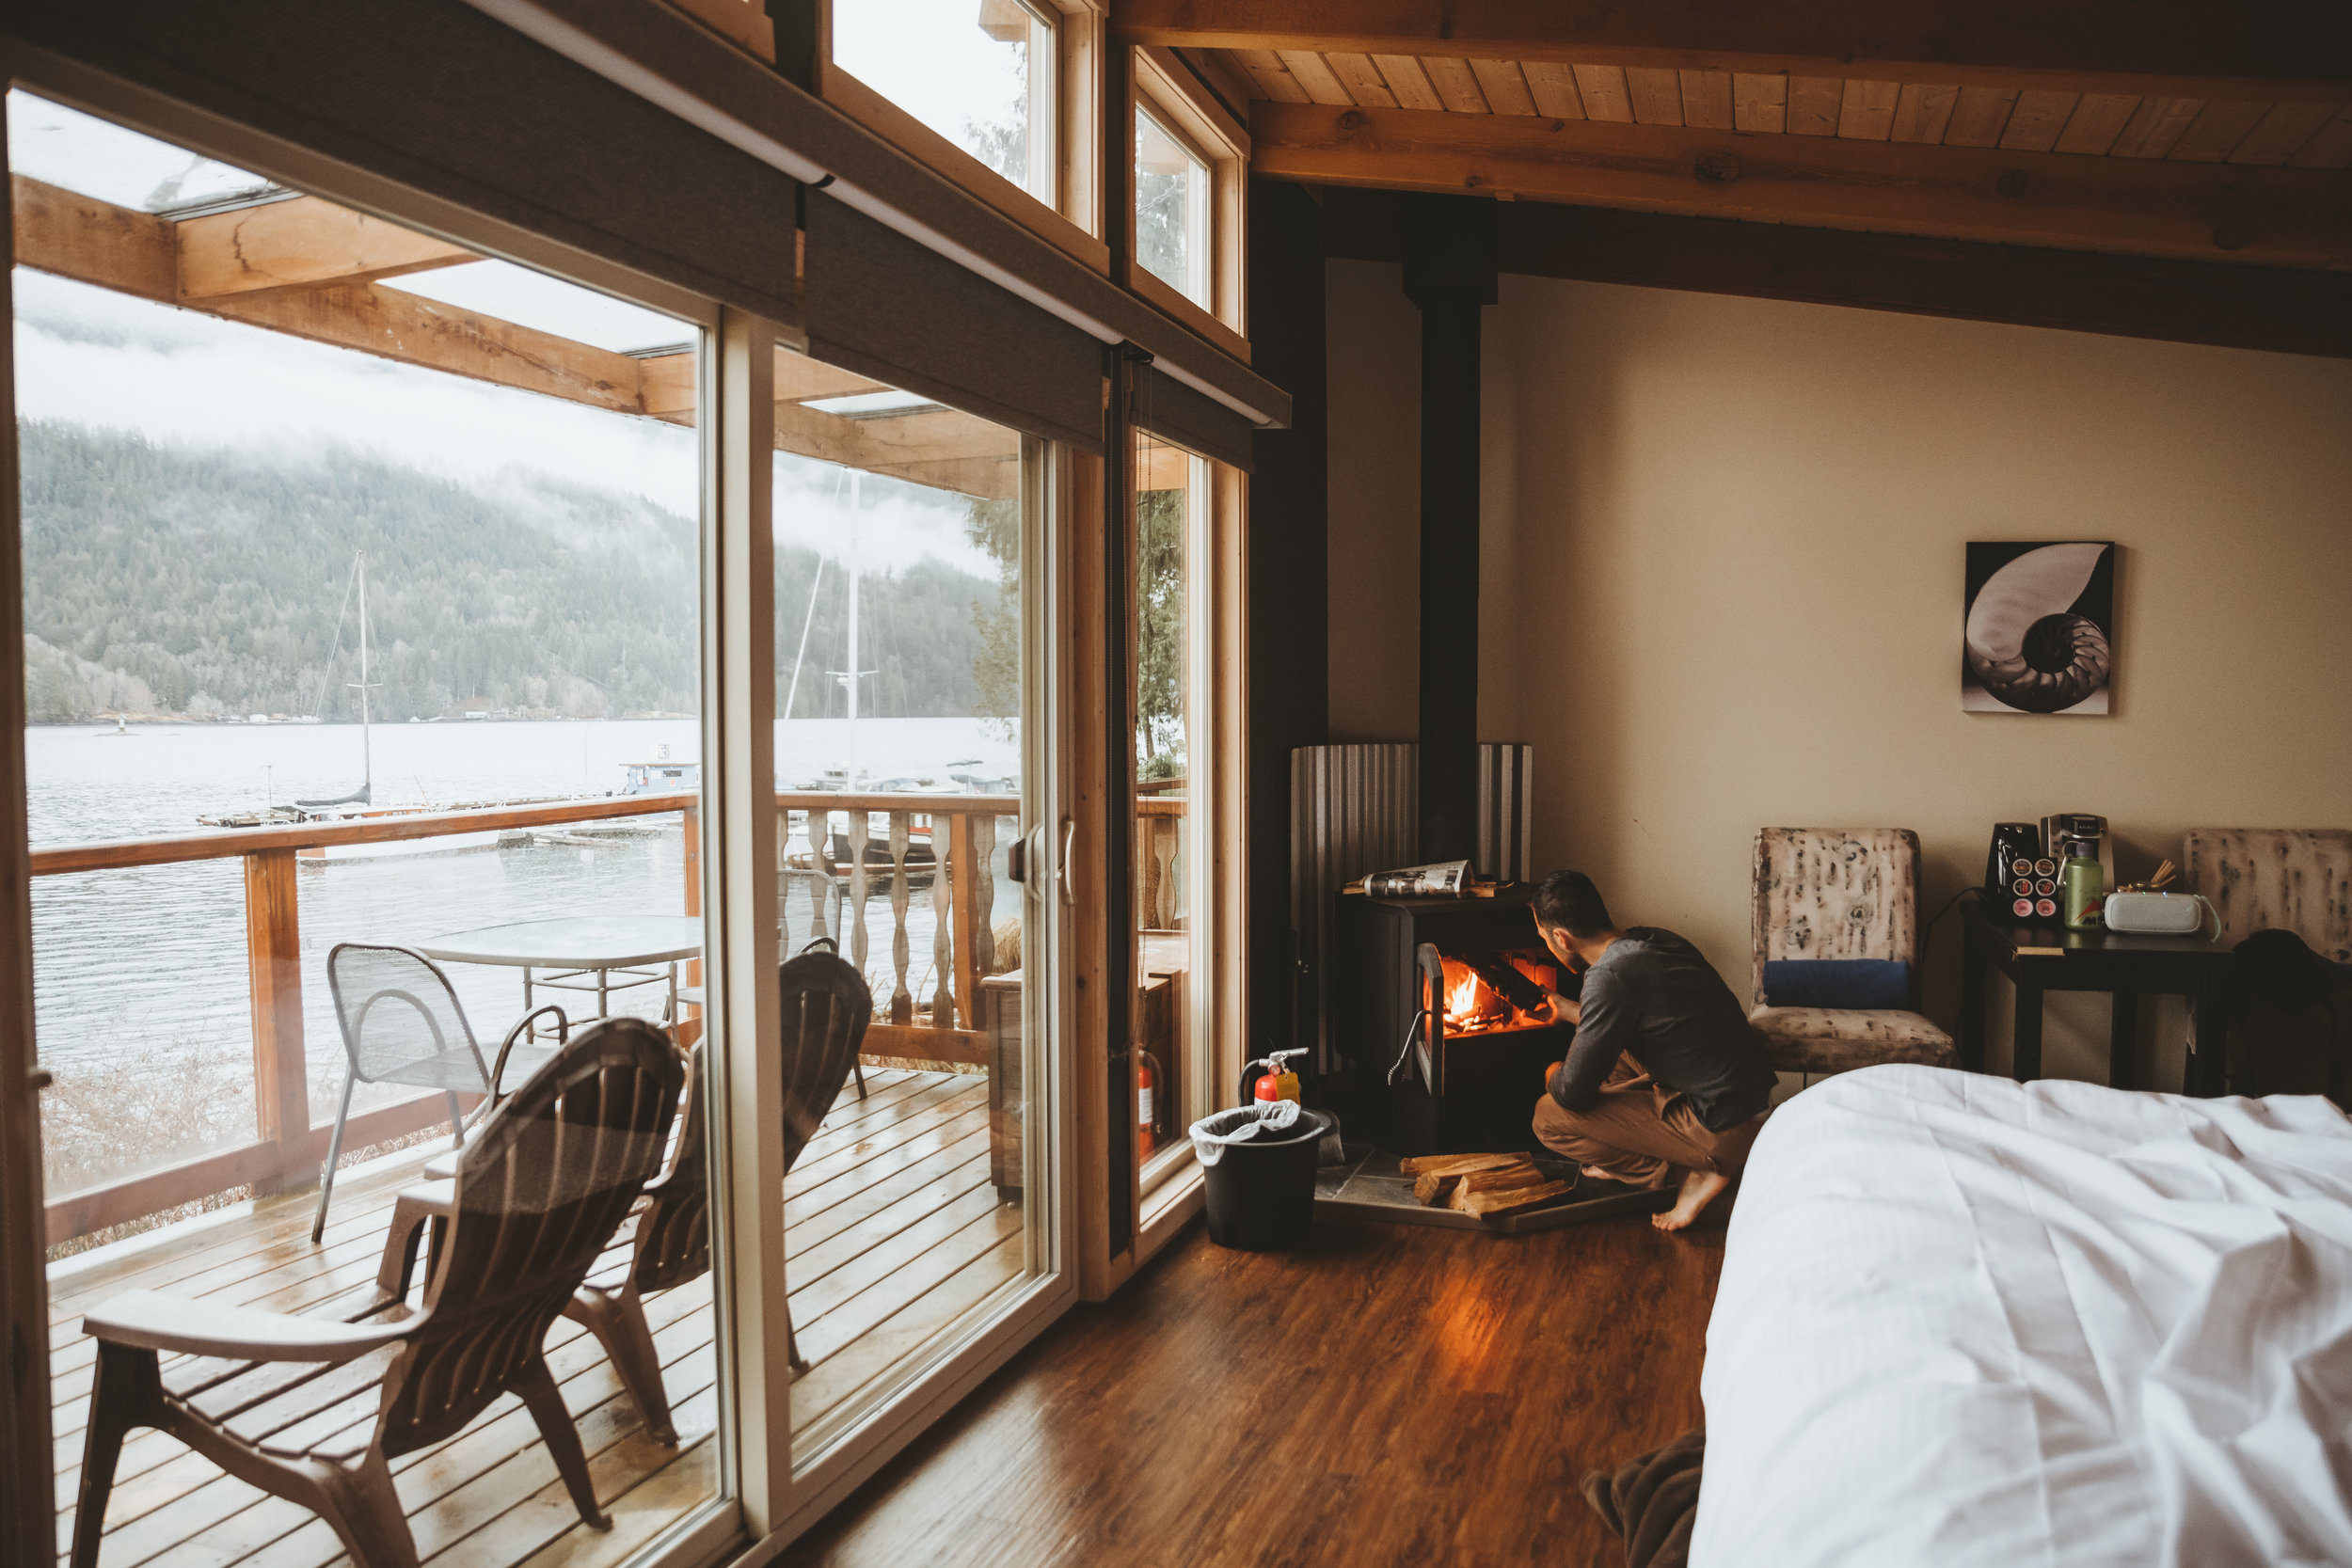 sunshine coast retreat - My brother and I spend the weekend at a cozy cabin in Egmont, BC